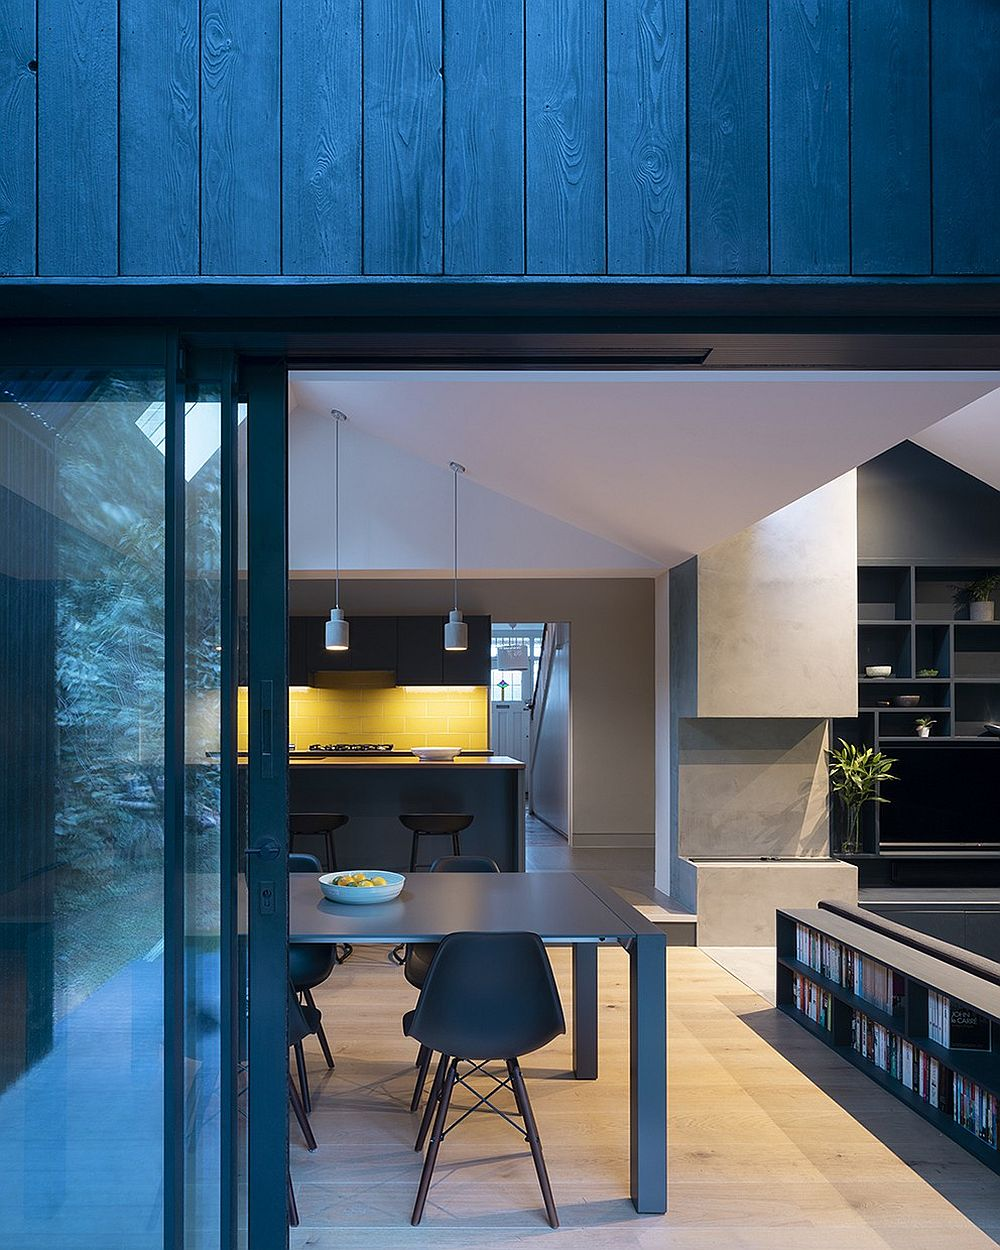 Blue, concrete and wood fashion a unique color palette inside this modern London home